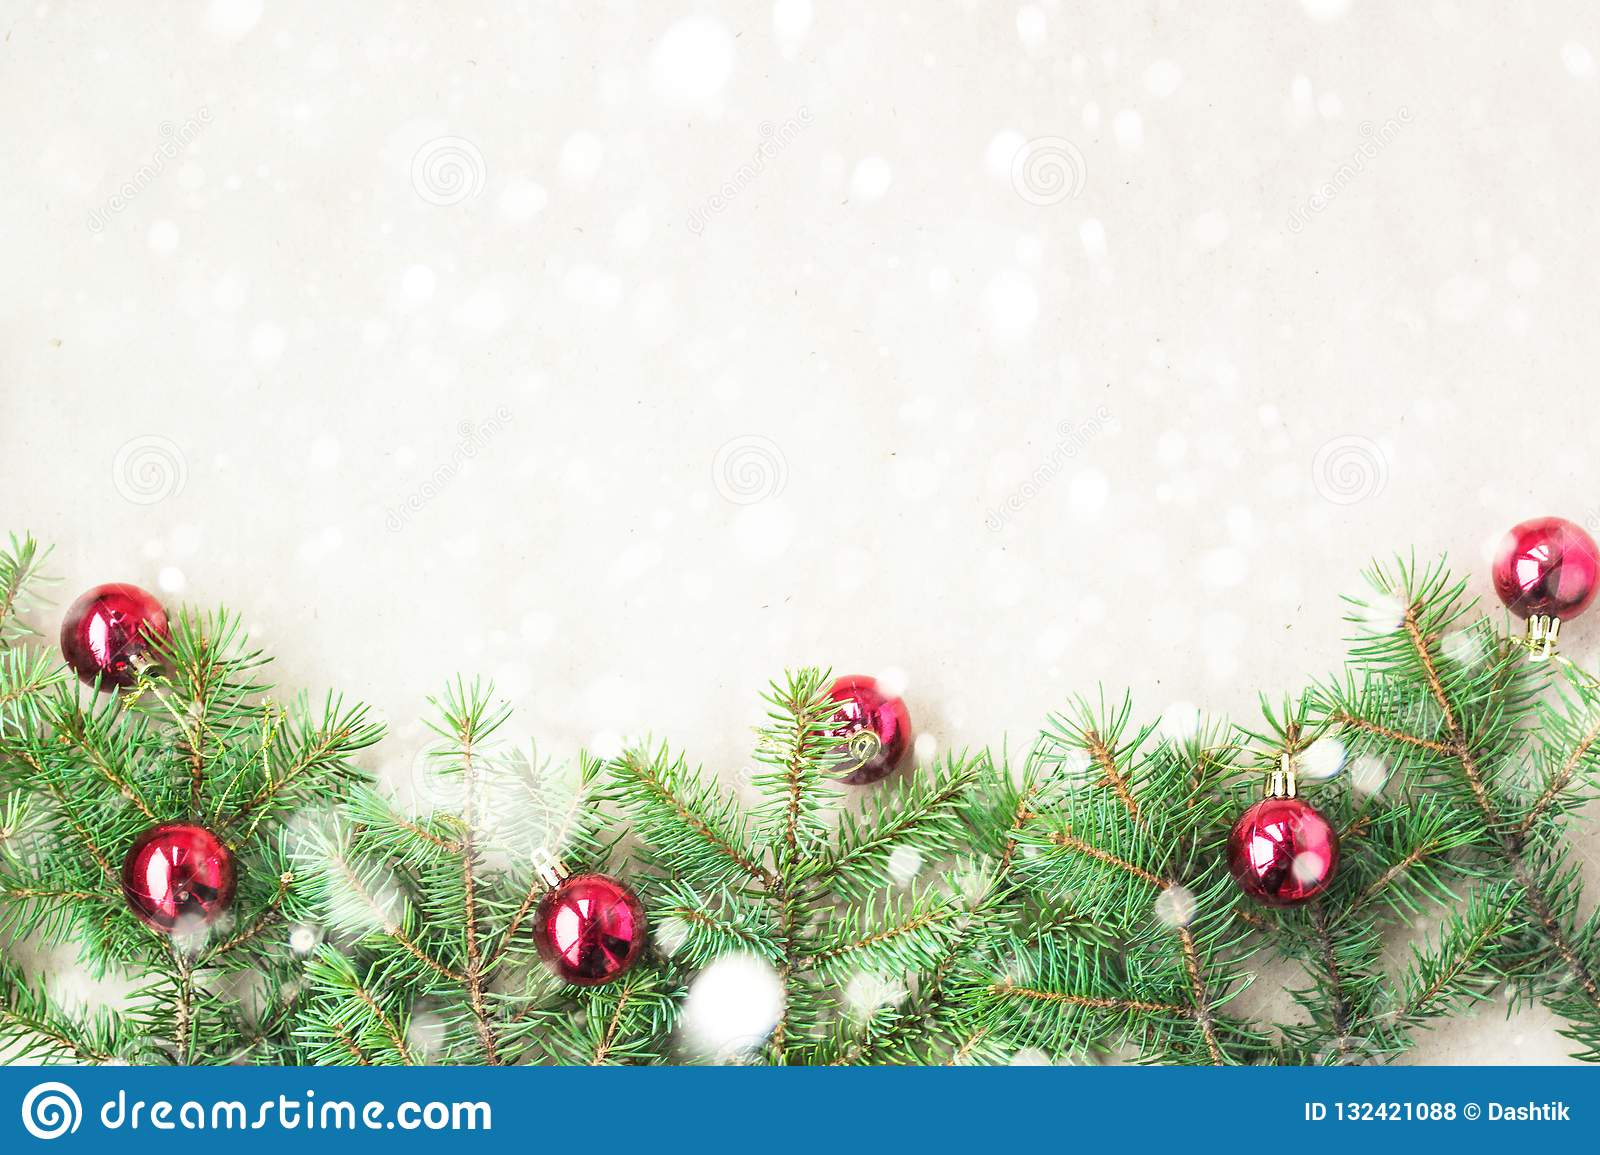 Fir tree branches decorated with red christmas balls as border on a rustic holiday background frame with snow copy space